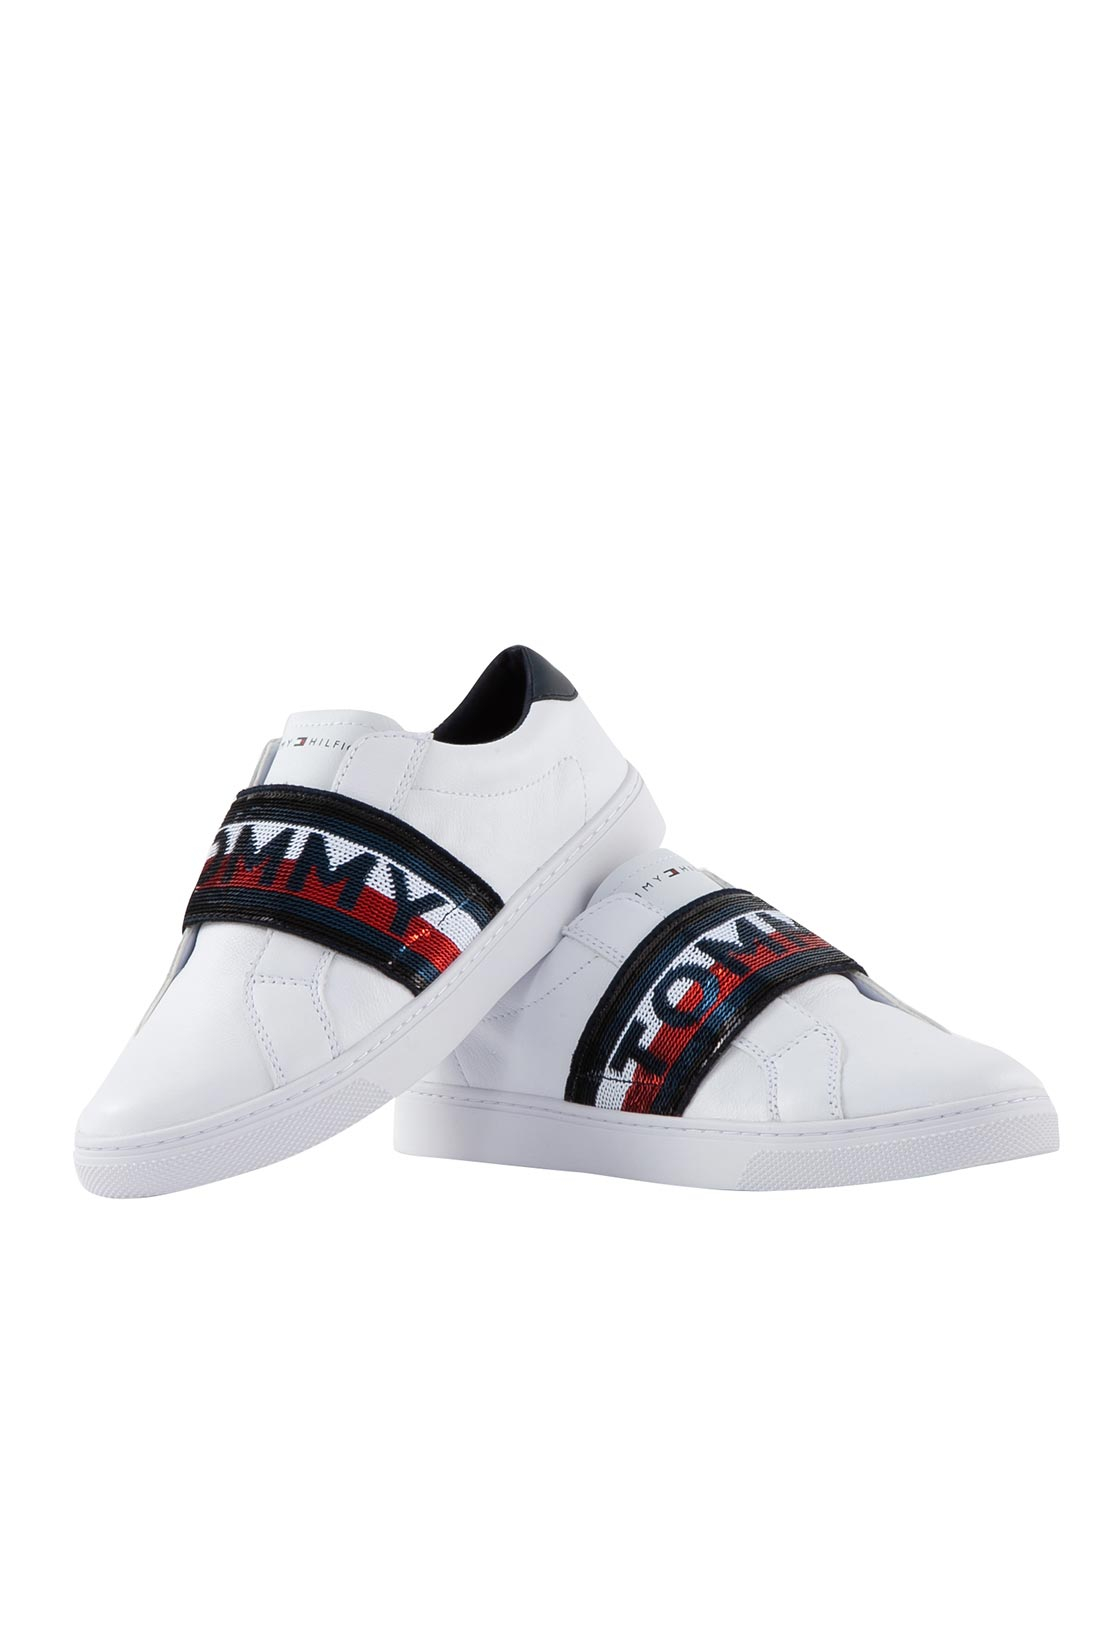 TOMMY HILFIGER Sneakers donna slip on bianche con glitter